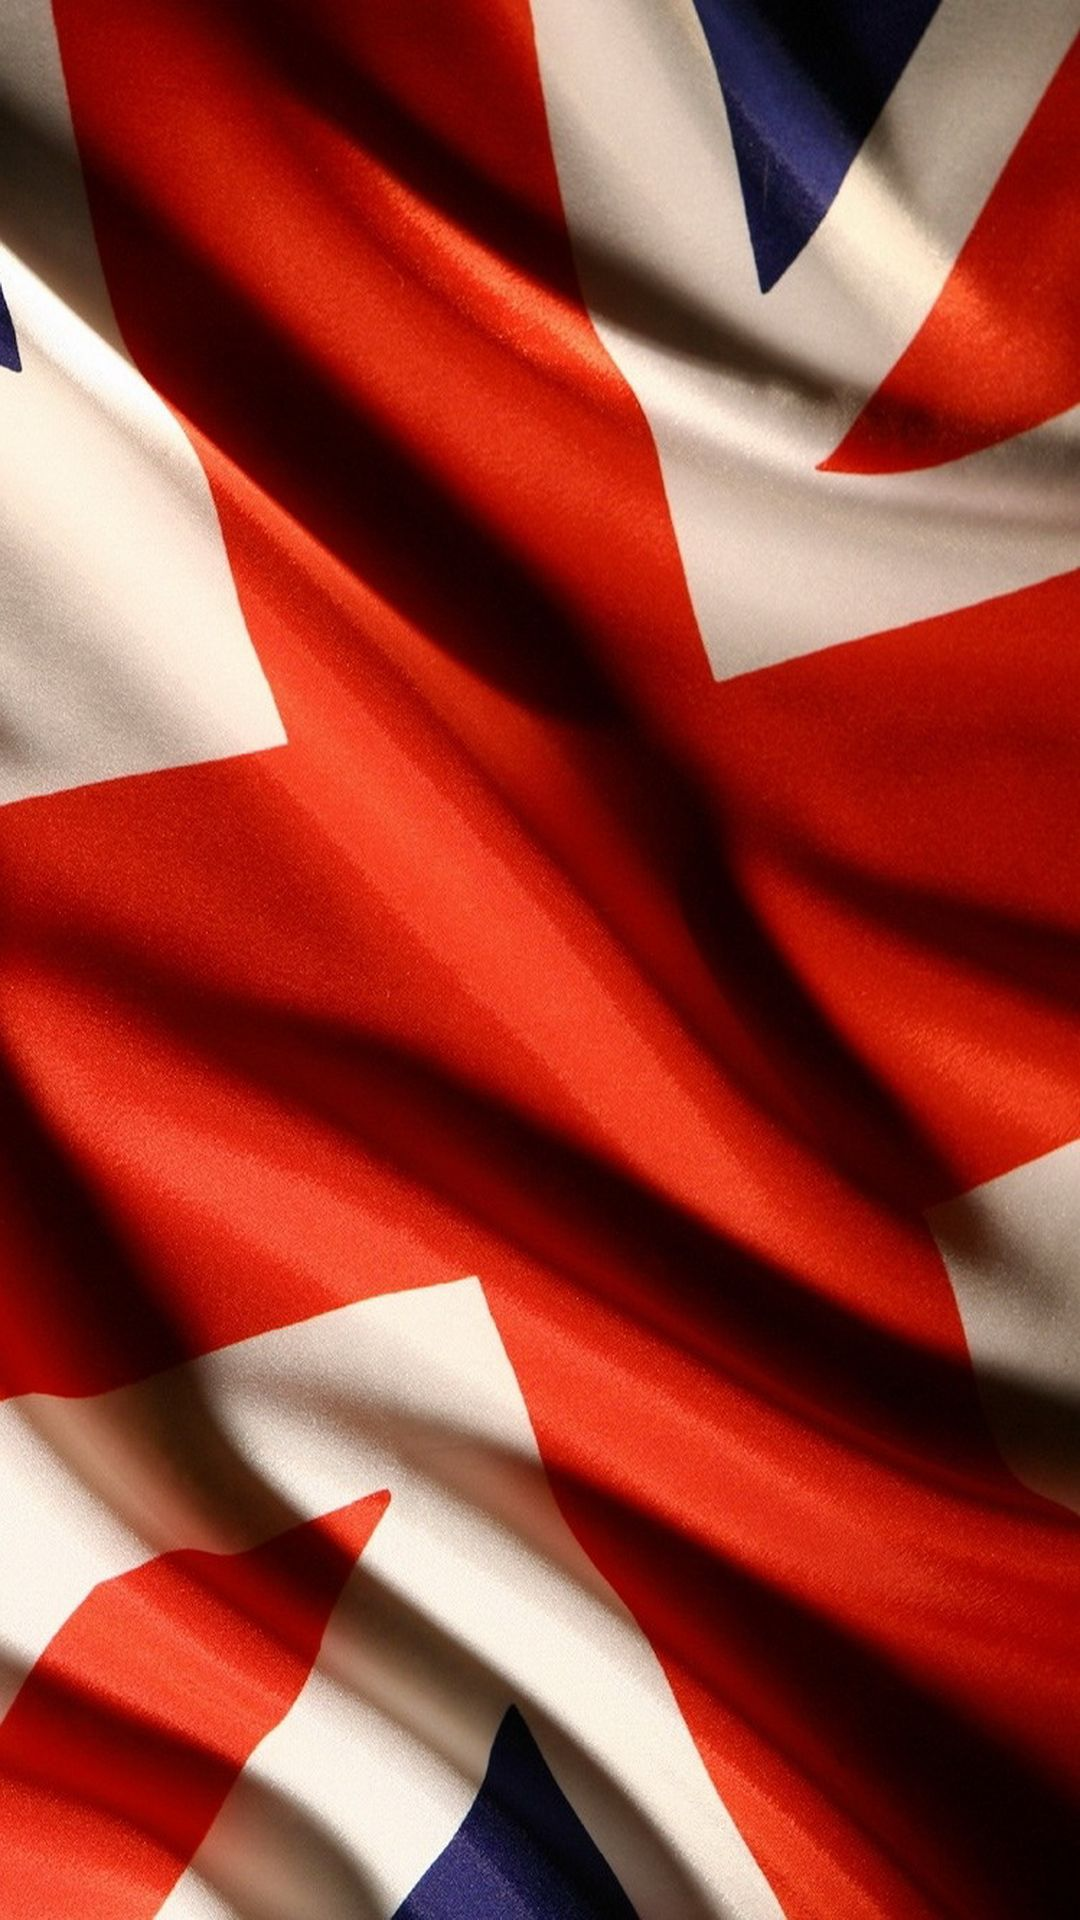 Hd wallpaper tap -  Tap And Get The Free App Stylish British Flag Red Union Jack Great